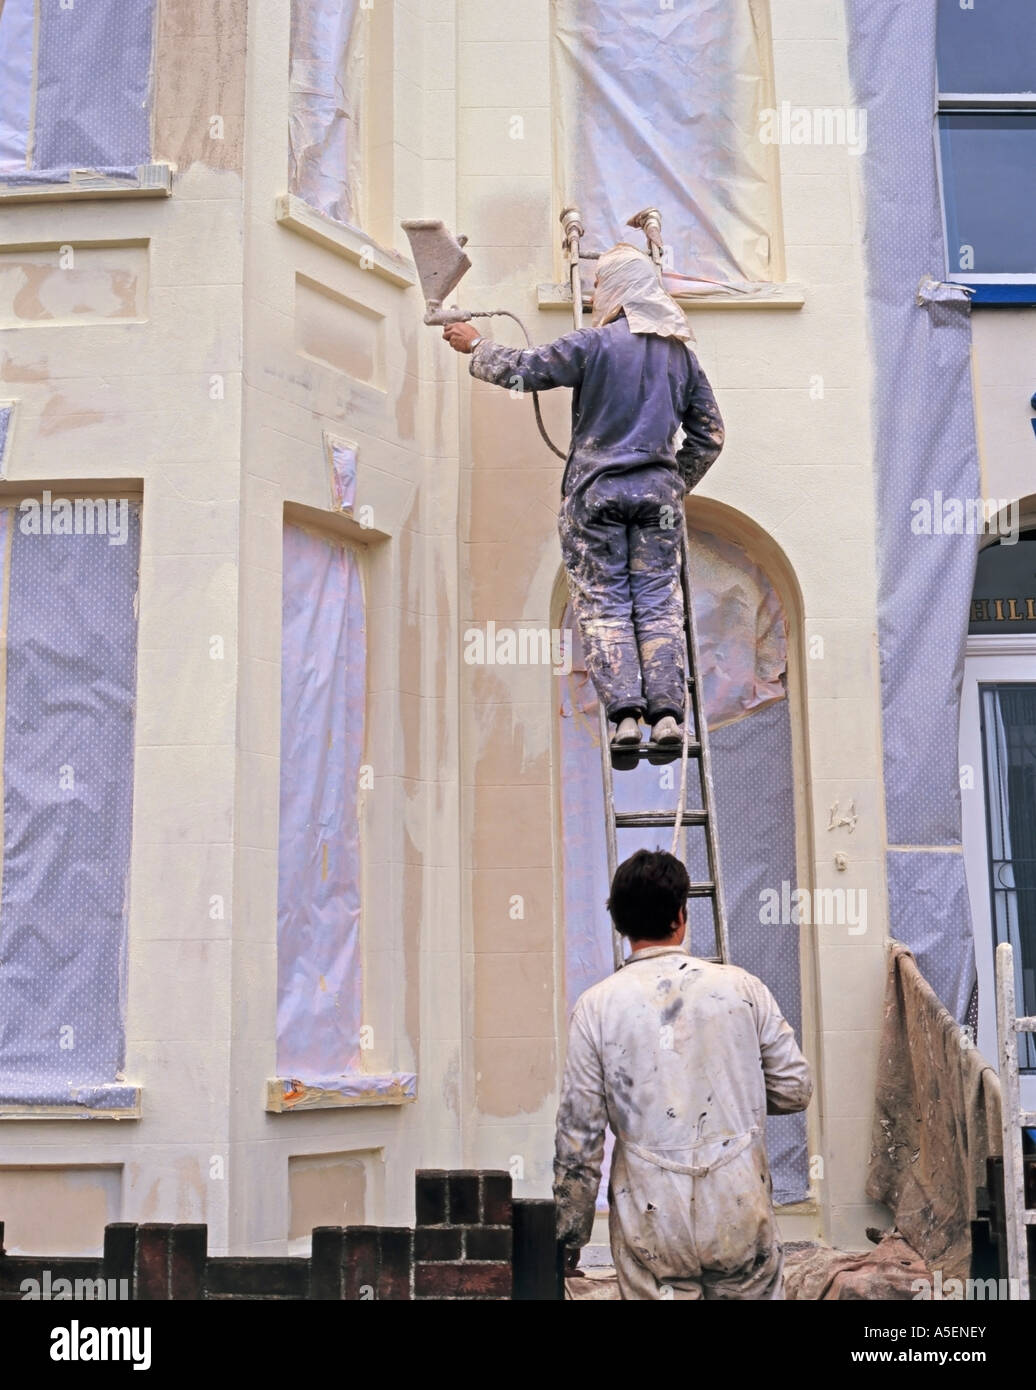 House Exterior Protection Spray Painting Stock Photo Royalty Free Image 11290562 Alamy